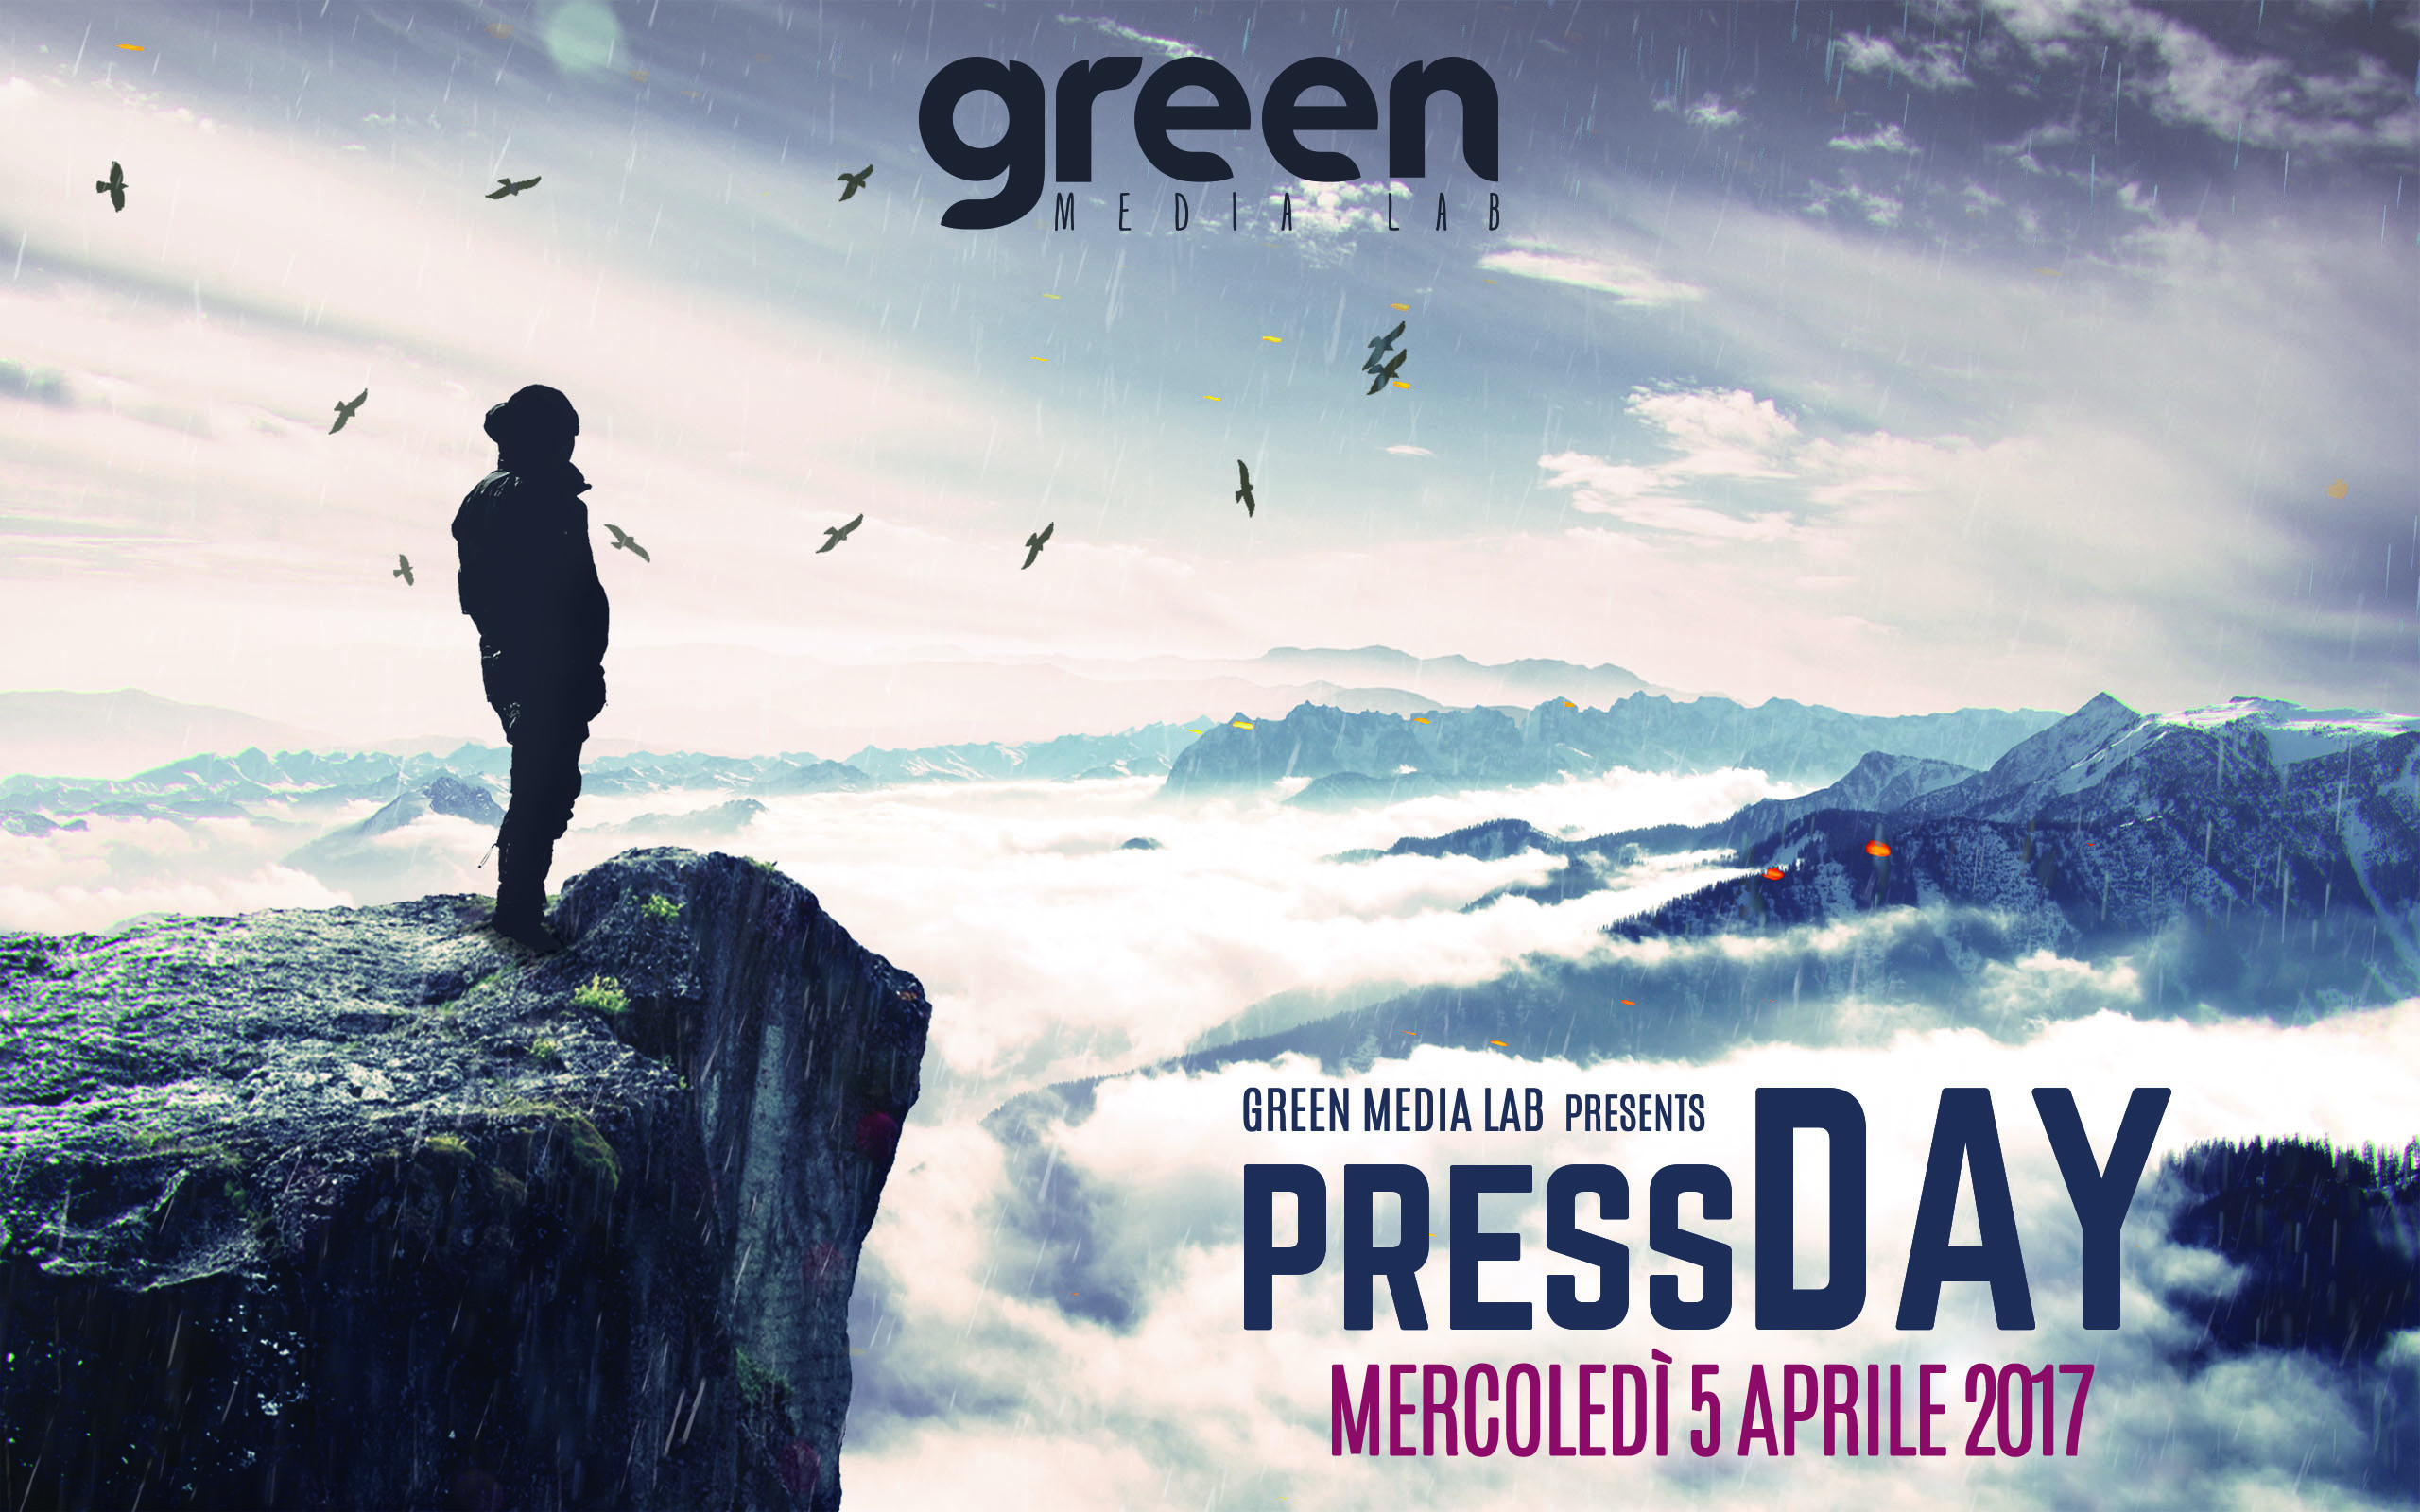 Nuova edizione del Press Day di Green Media Lab